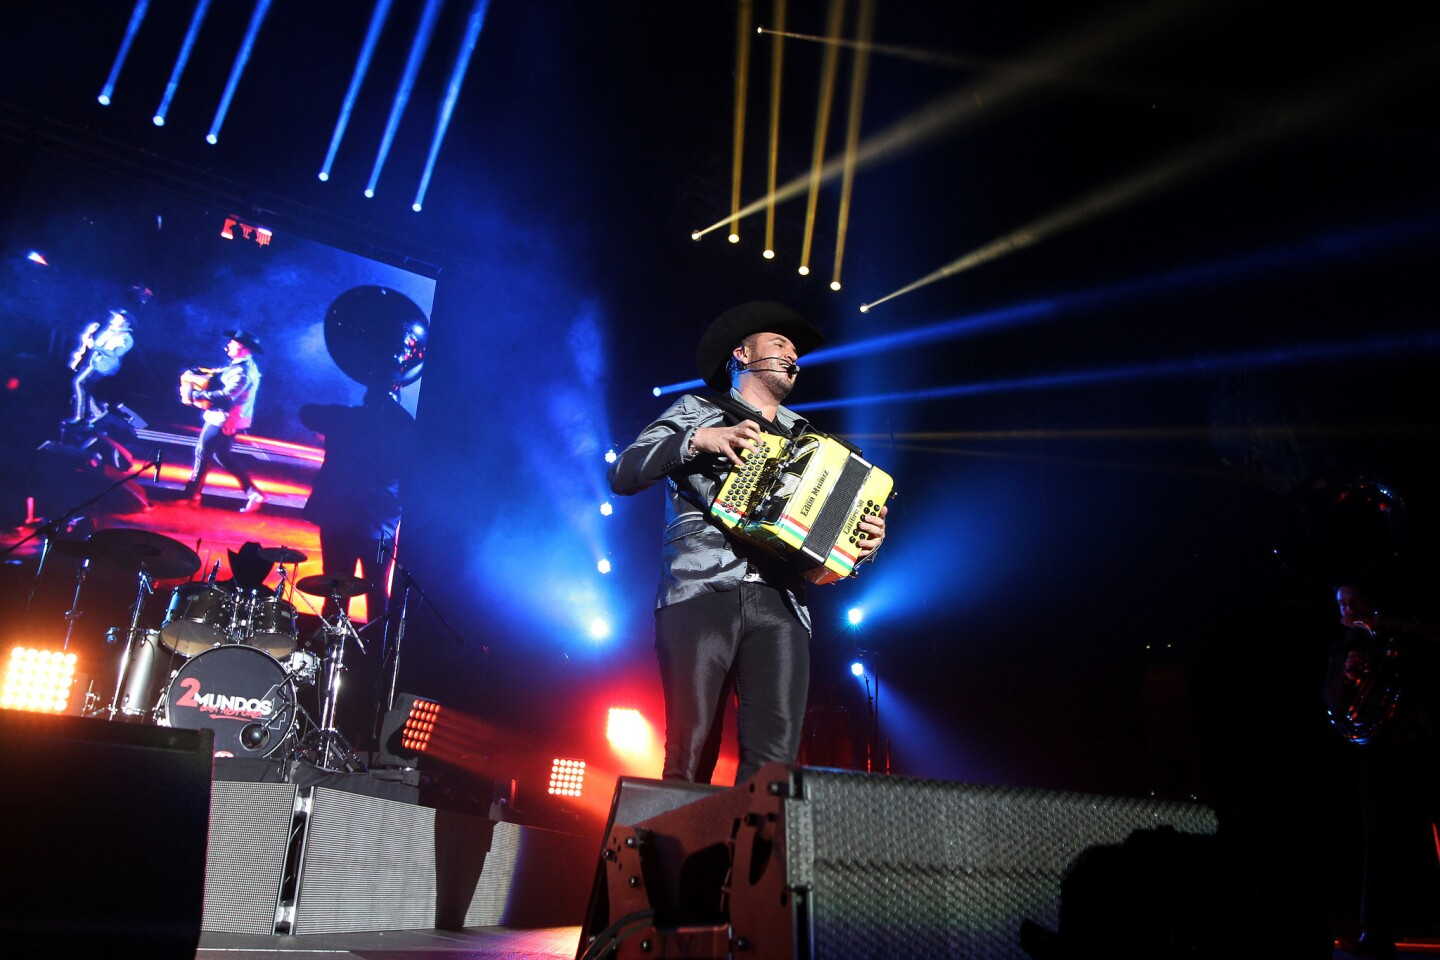 Gerardo Ortiz and Calibre 50 performs at The Forum on February 13, 2016 in Inglewood, California. (Photo by: DDPixels.com)